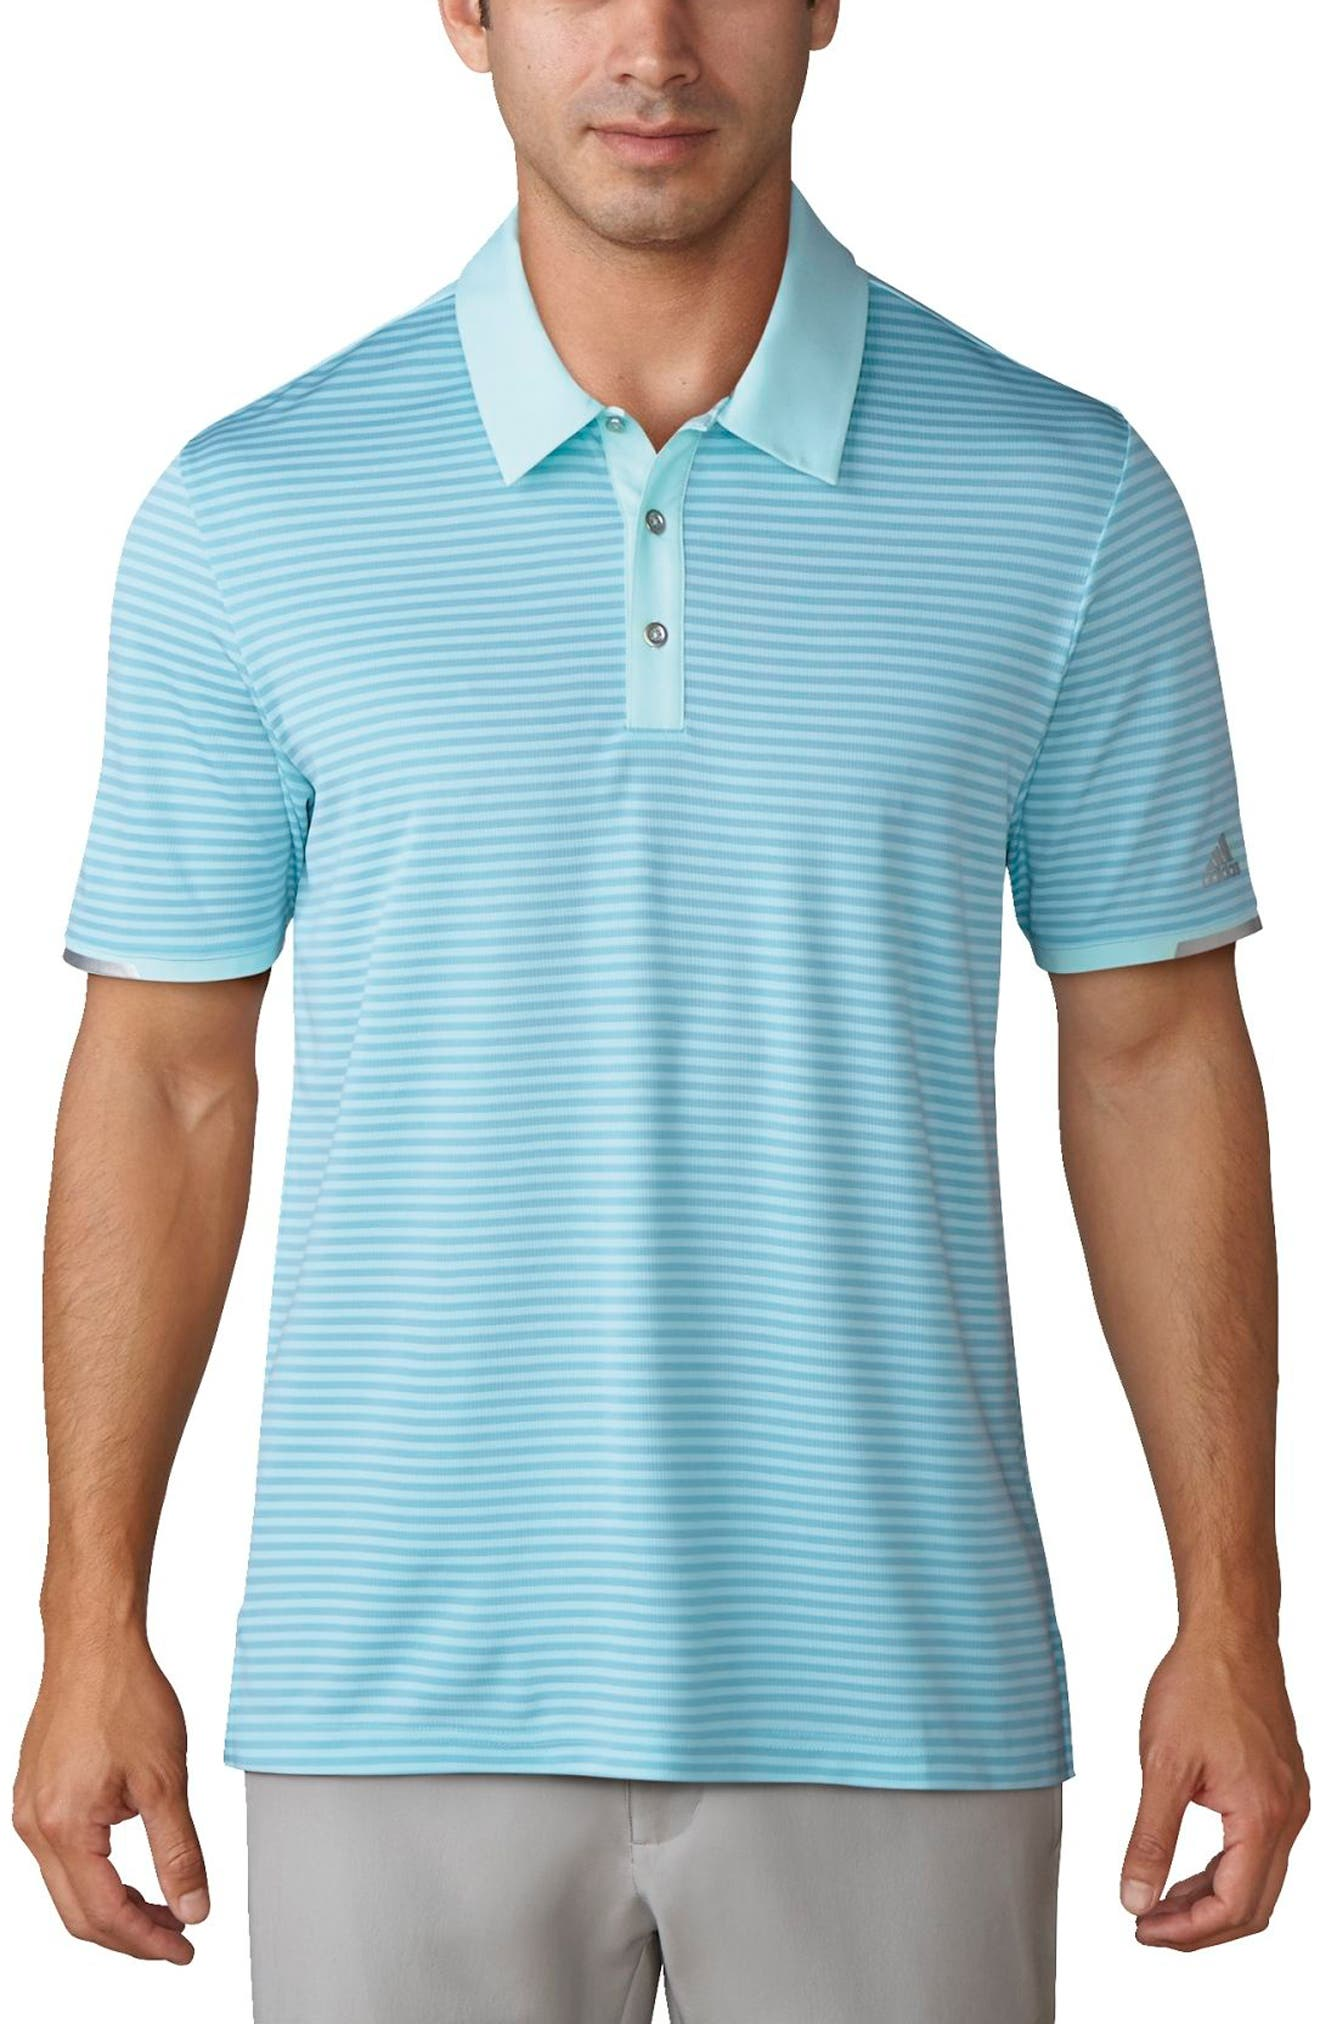 climachill<sup>®</sup> Stripe Golf Polo,                         Main,                         color, Icy Blue